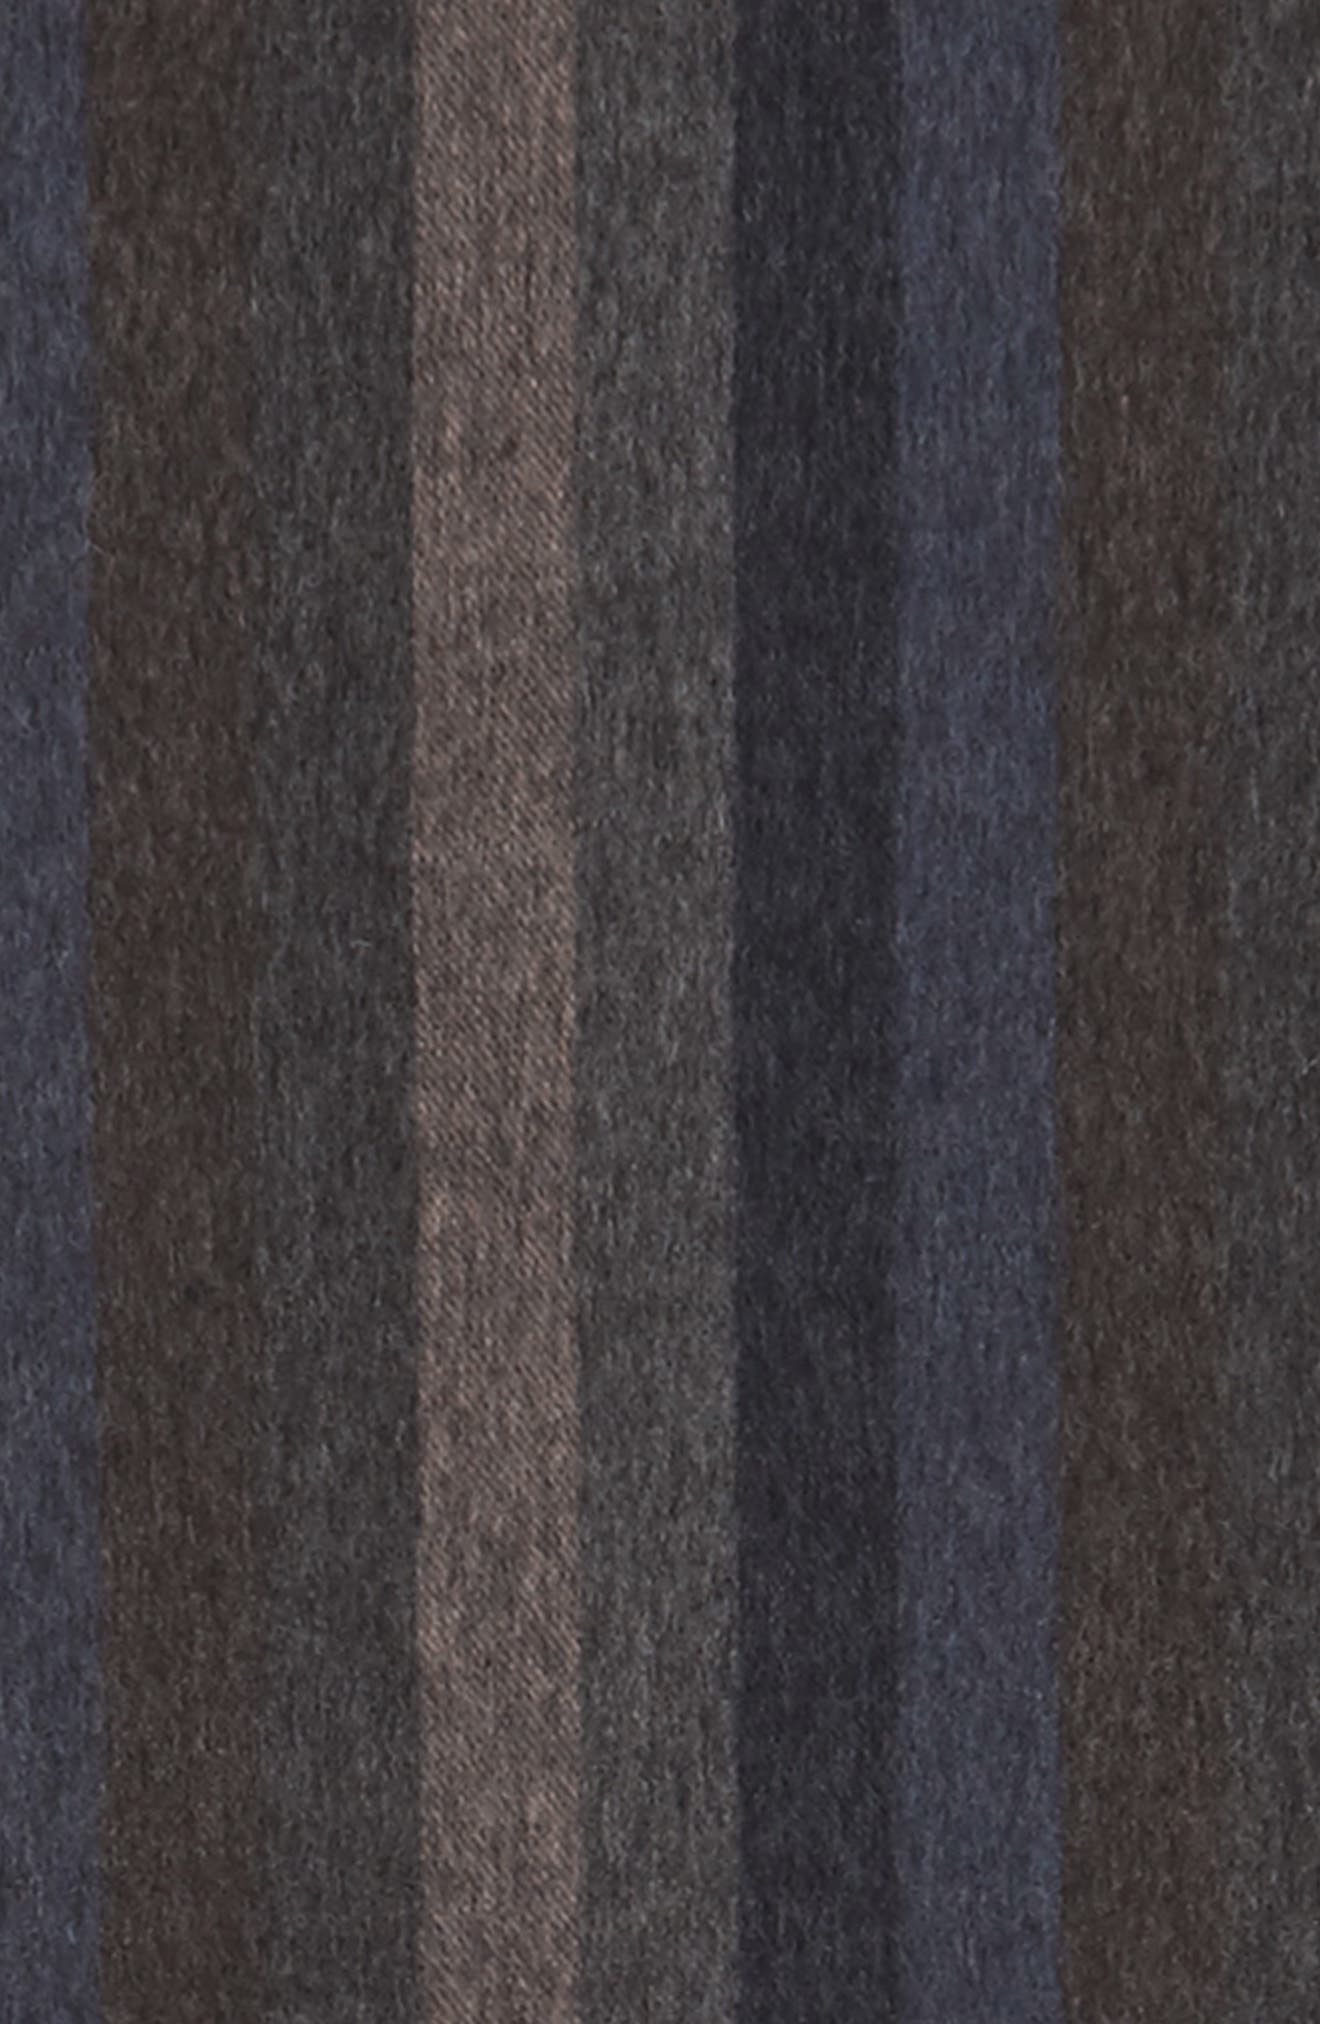 Lambswool Stripe Scarf,                             Alternate thumbnail 3, color,                             210